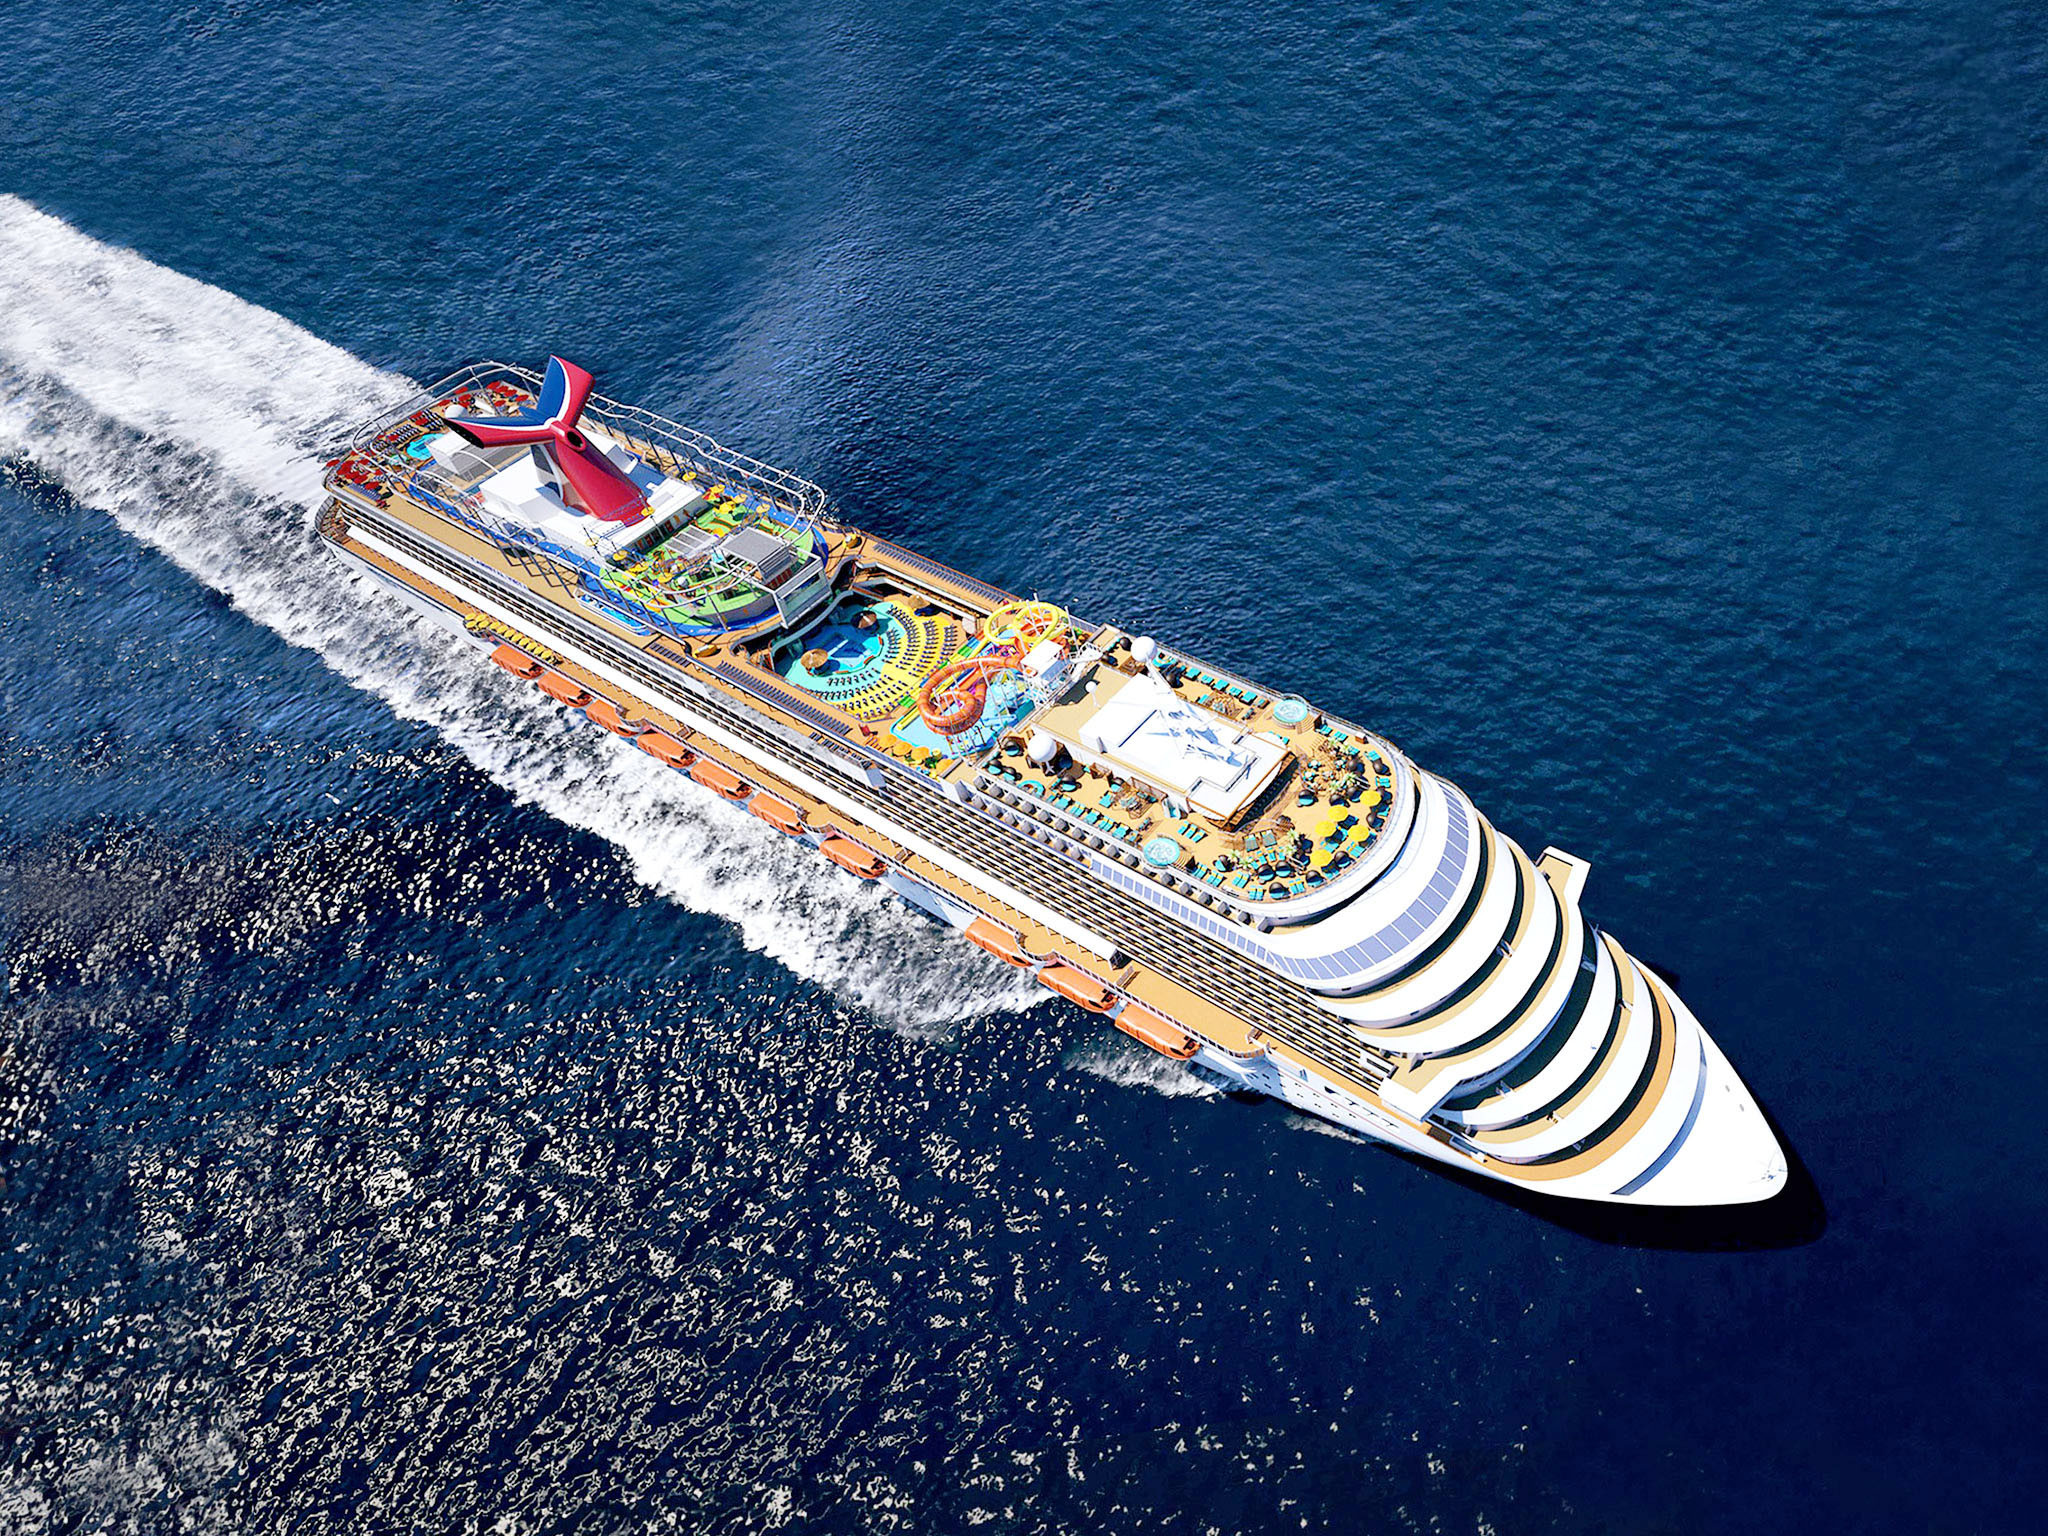 Carnival Cruise Line to build two new giant ships - Sun ...